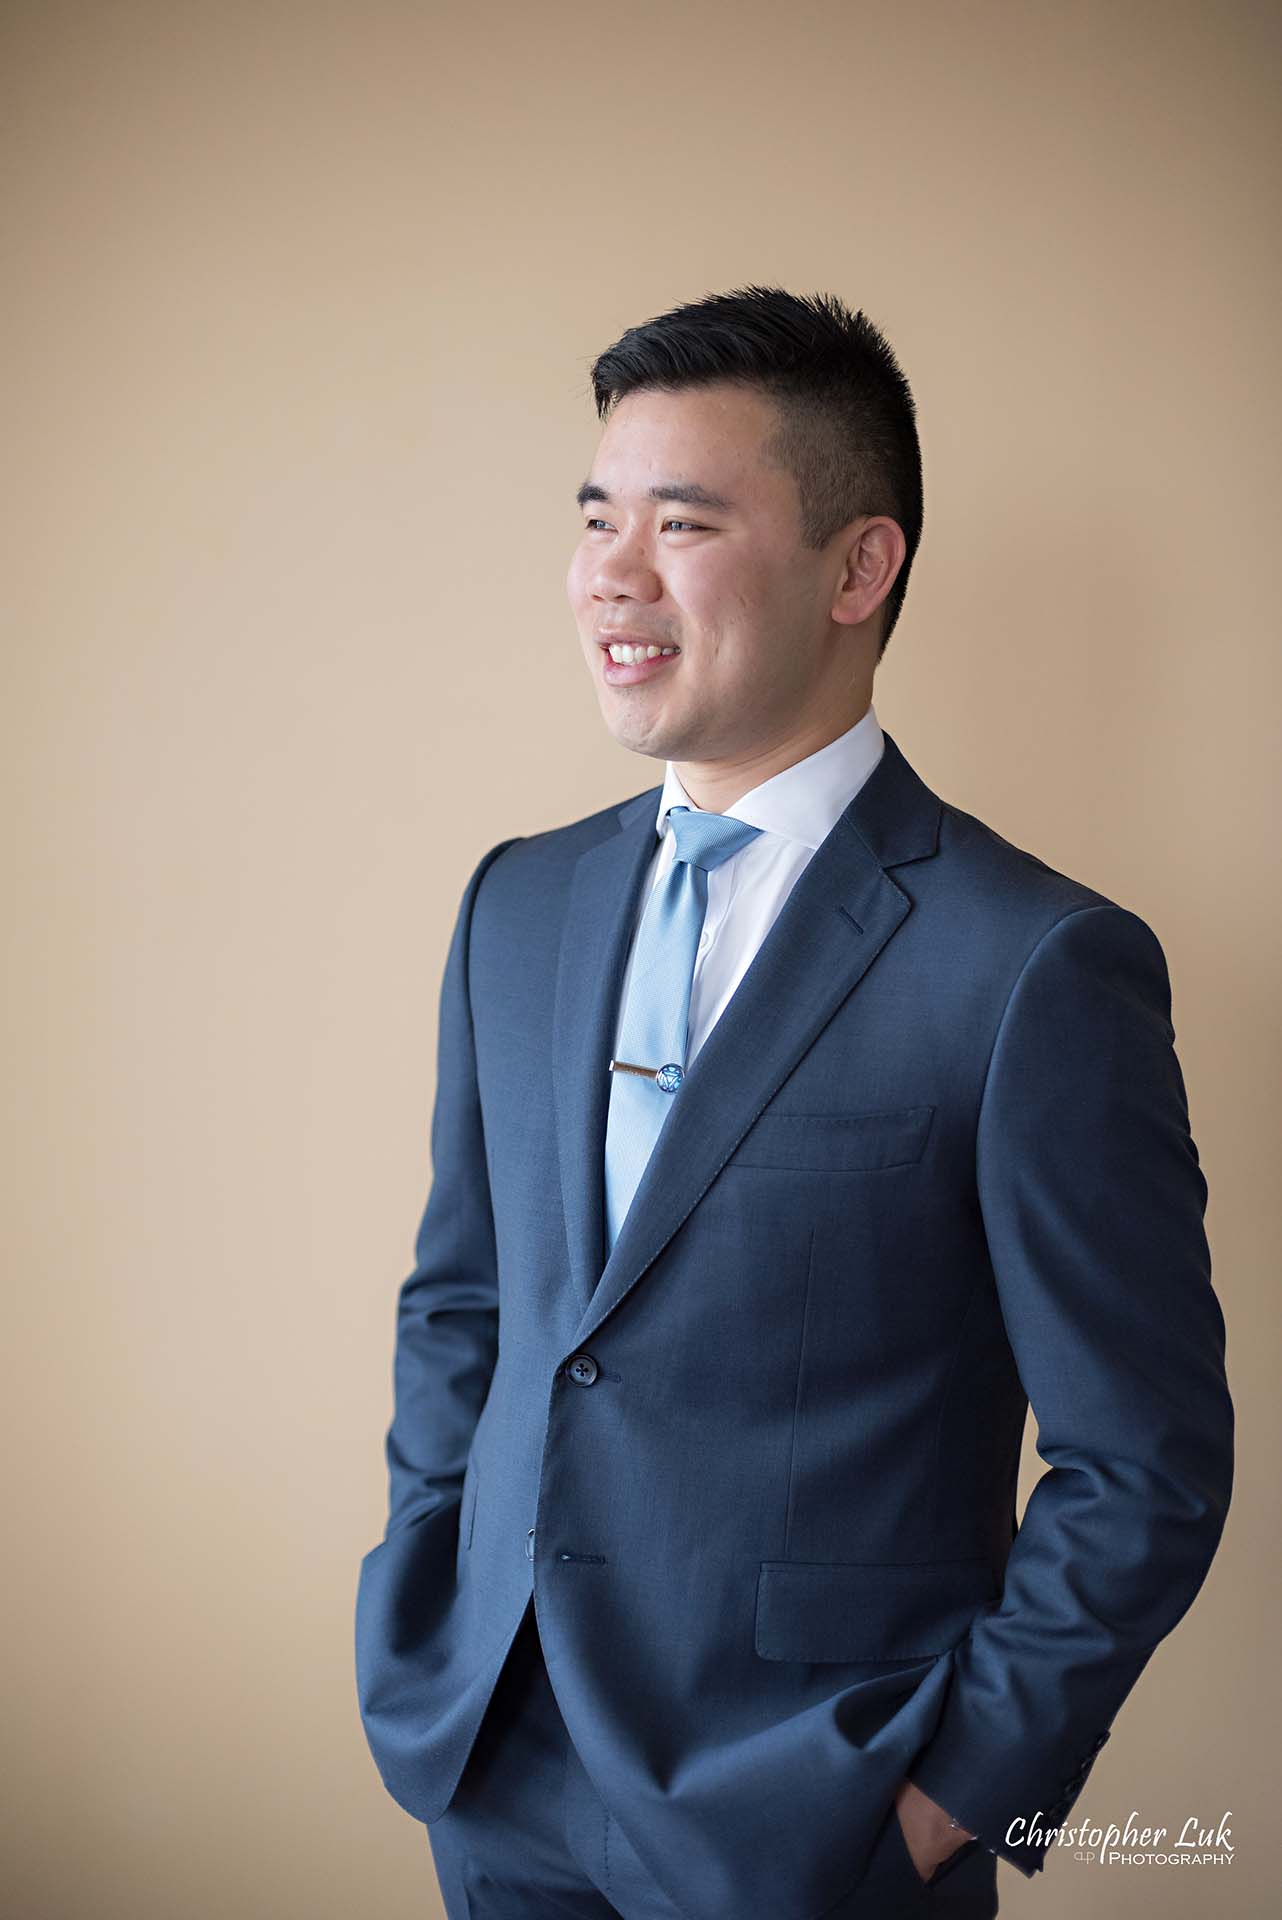 Christopher Luk Toronto Wedding Photographer Groom Getting Ready Preparations Natural Candid Photojournalistic Wingmen Suits Custom Made to Measure Navy Blue Suit Smile Portrait